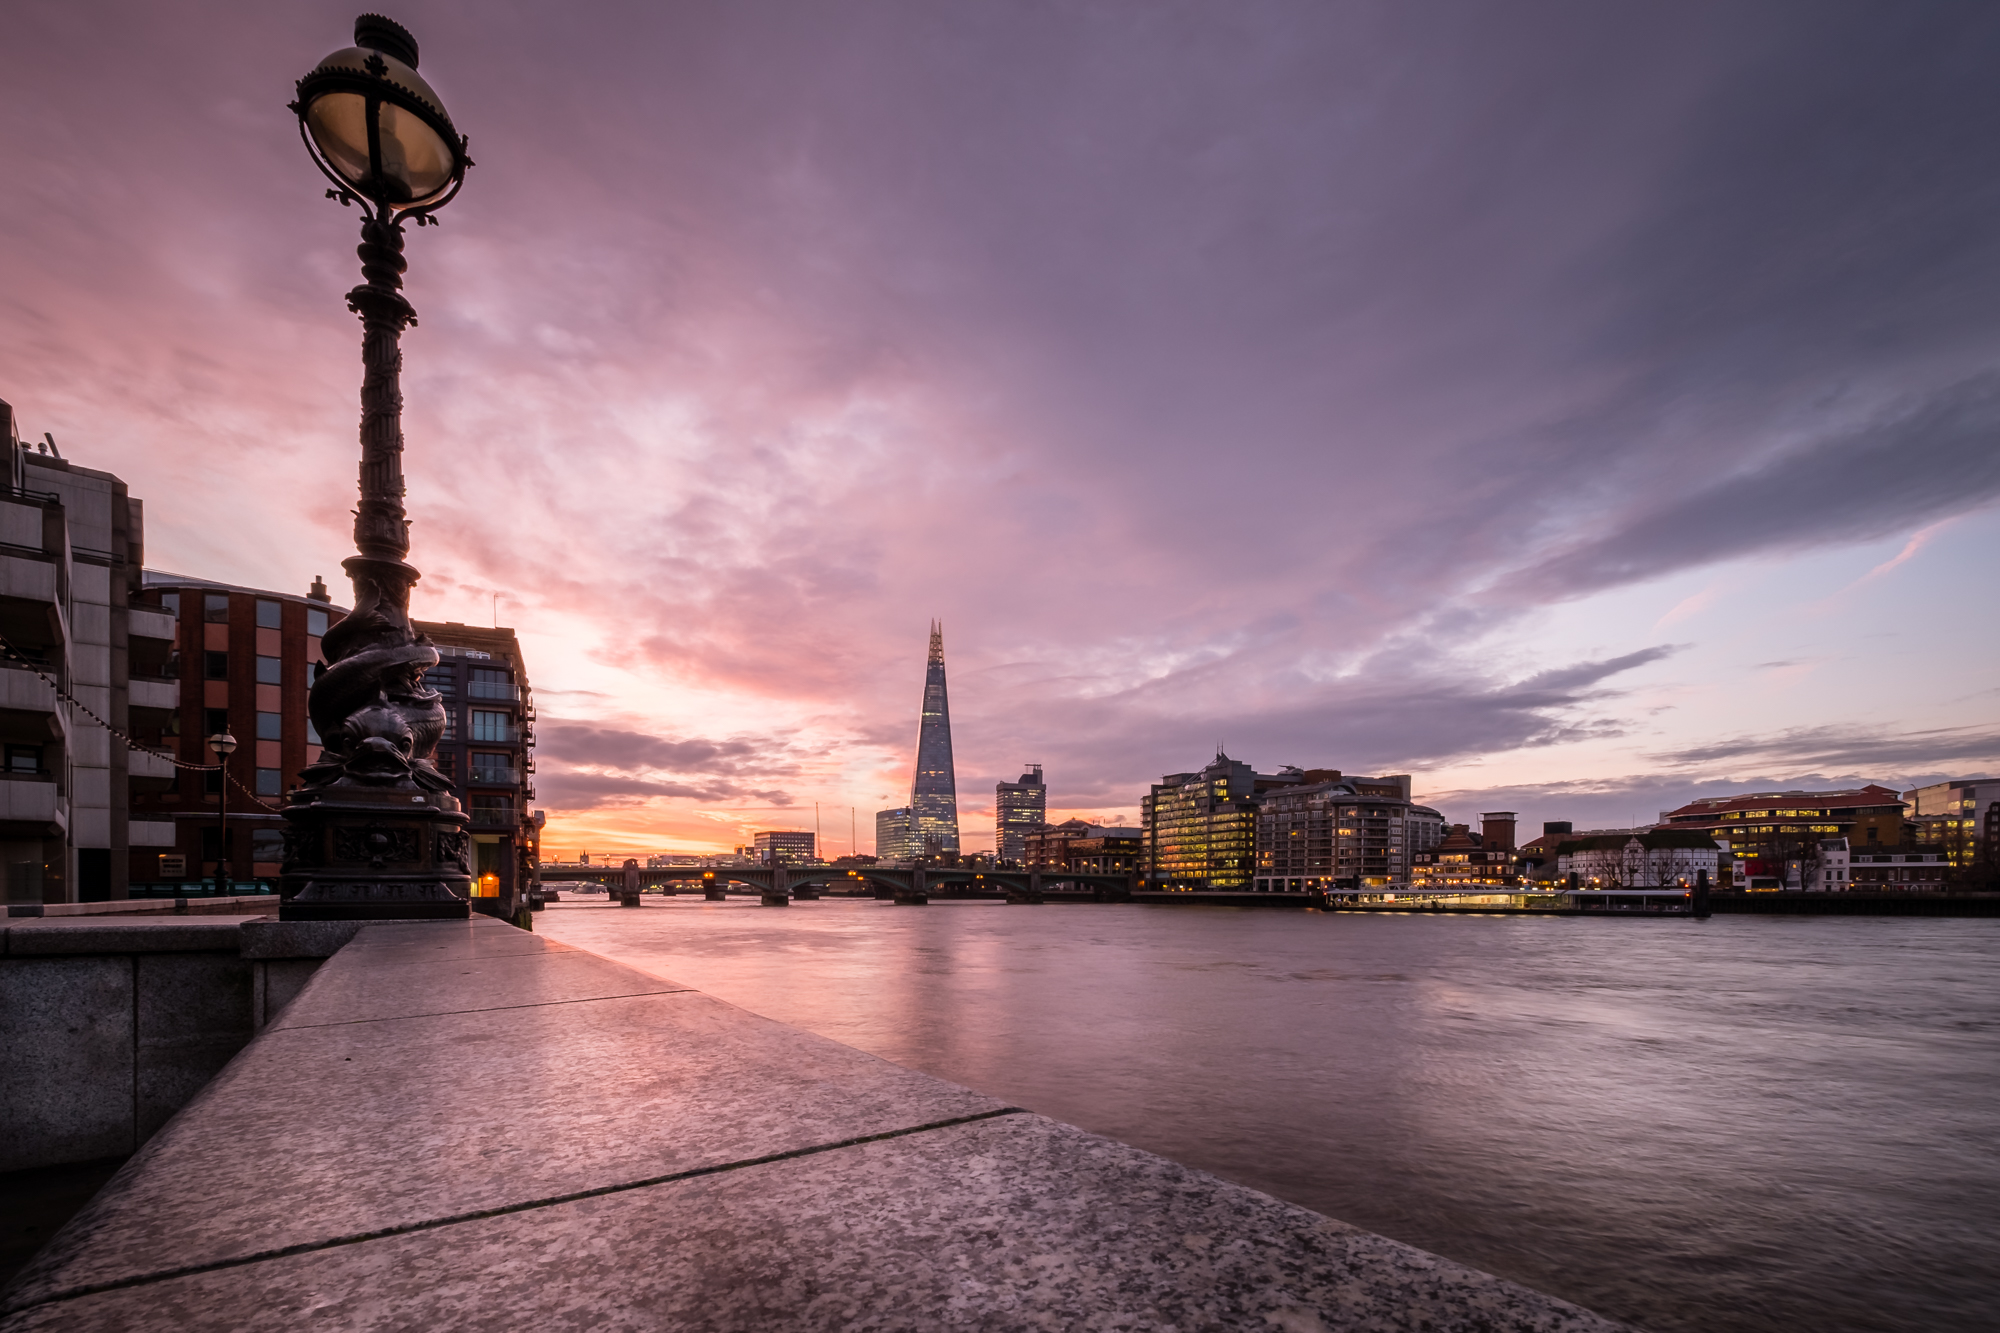 A picture of the River Thames and The Shard in London at sunrise by Trevor Sherwin